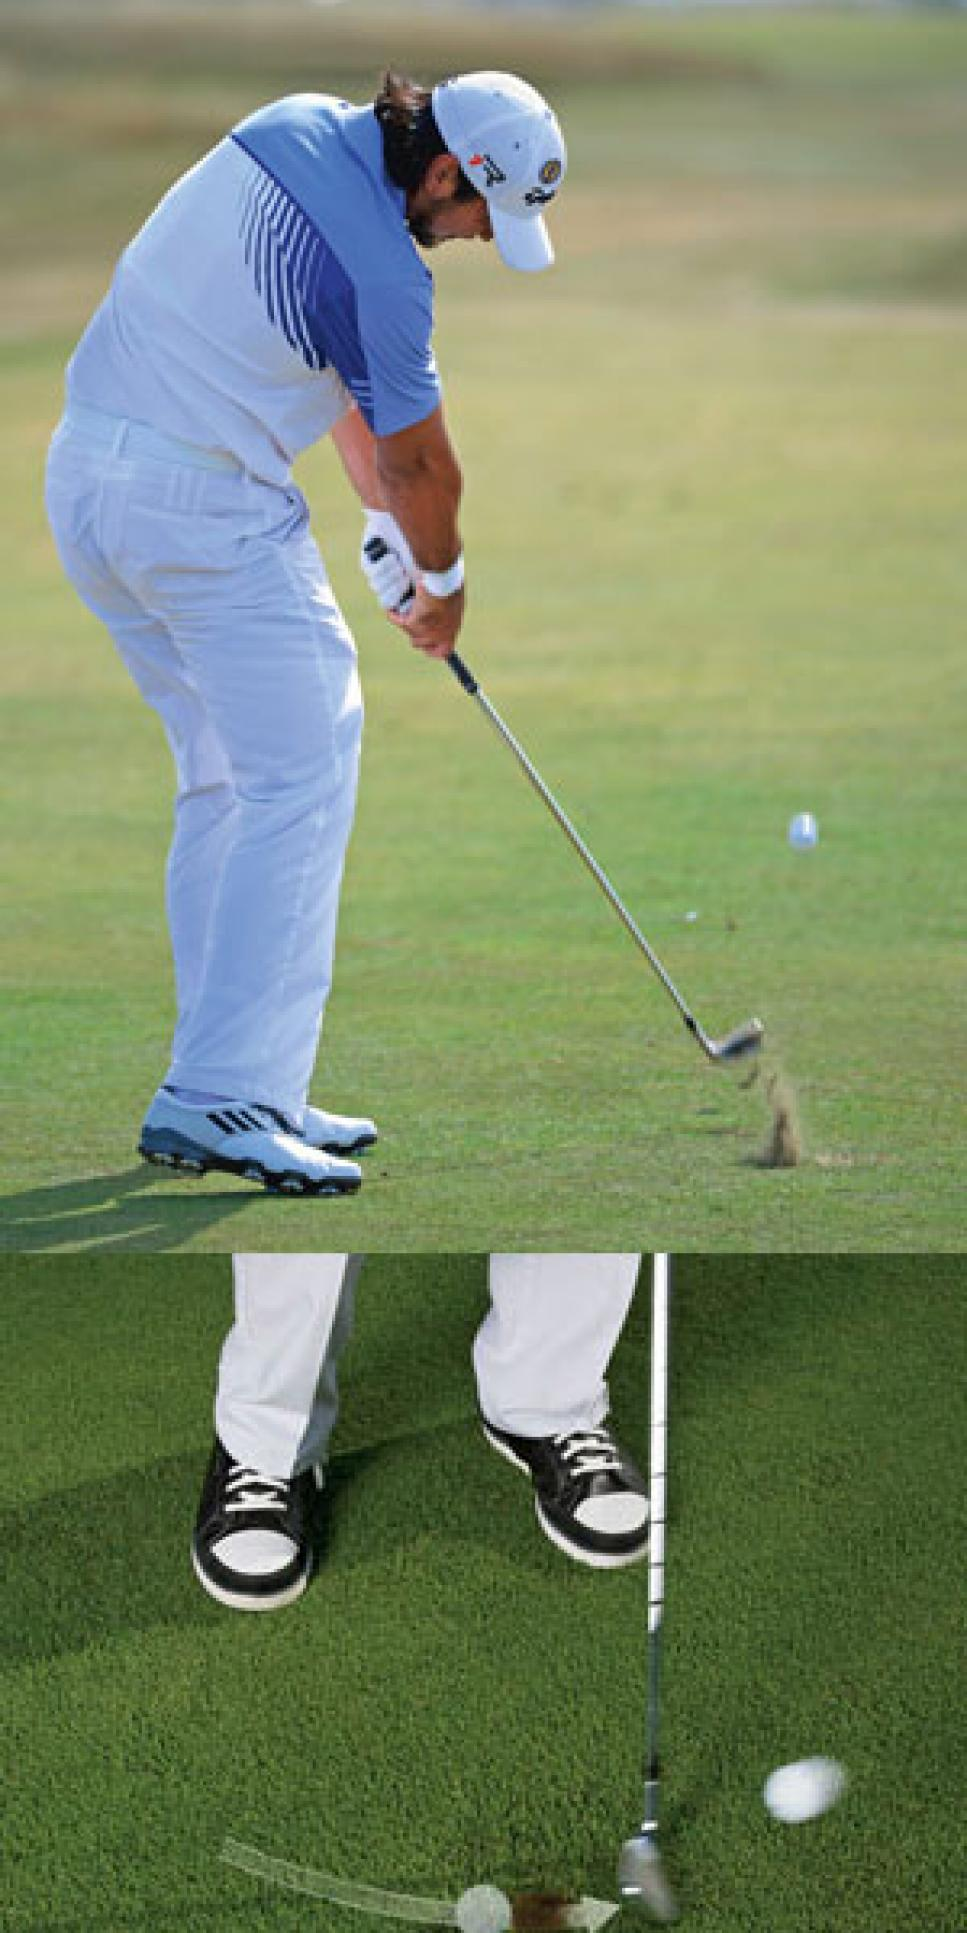 instruction-2013-12-inar01-hank-haney-impact-position.jpg